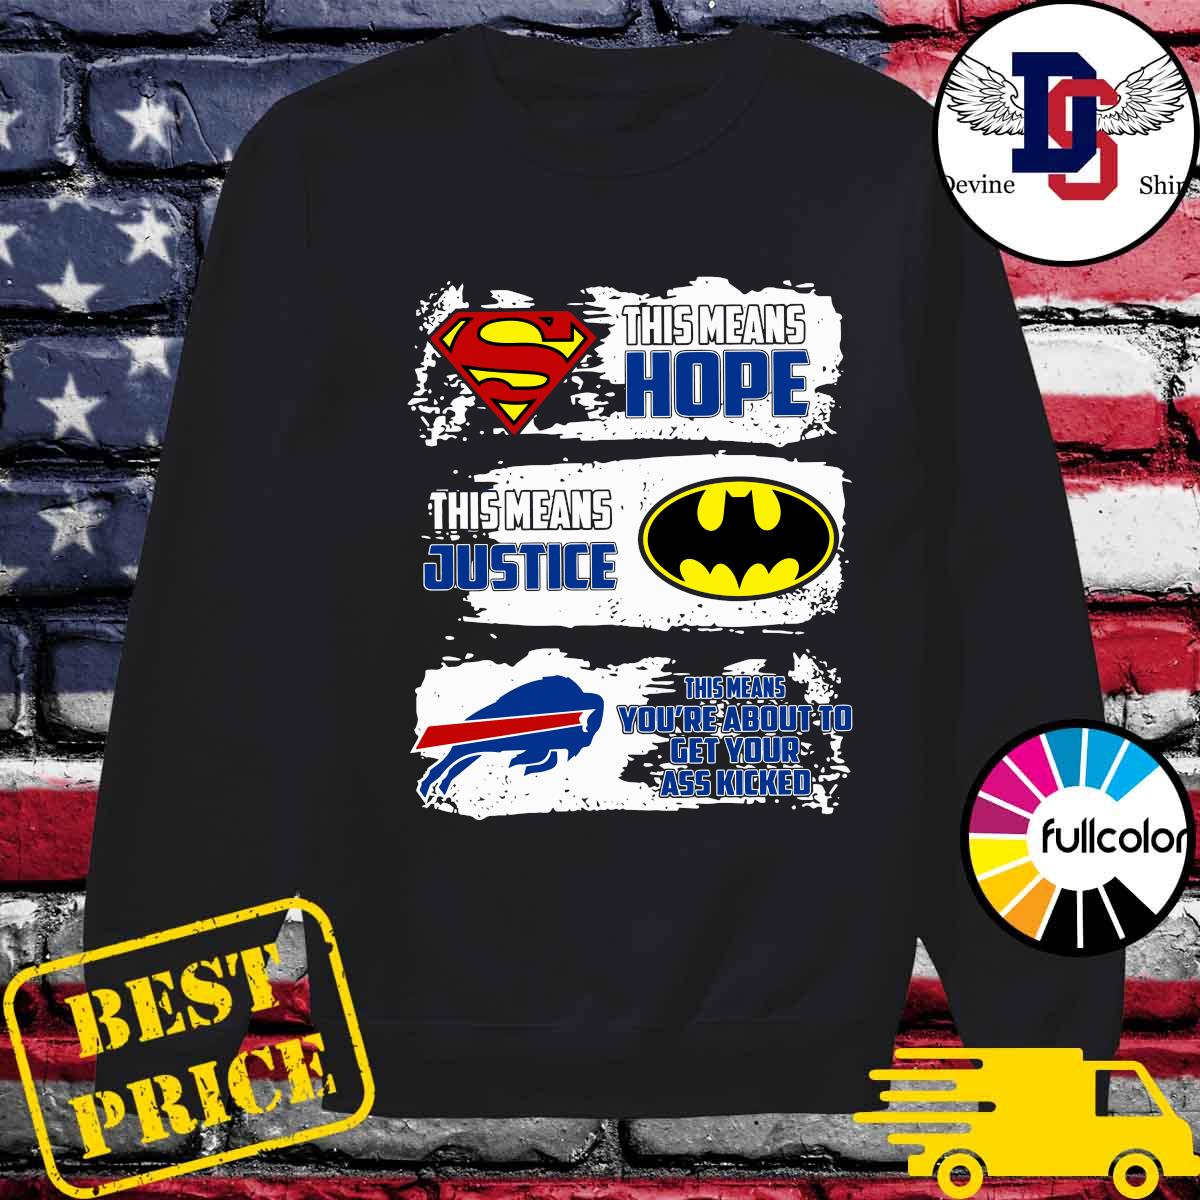 Superman This Means Hope, Batman This Means Justice, Buffalo Bills This Means You_re About To Get Your Ass Kicked Shirt Sweater